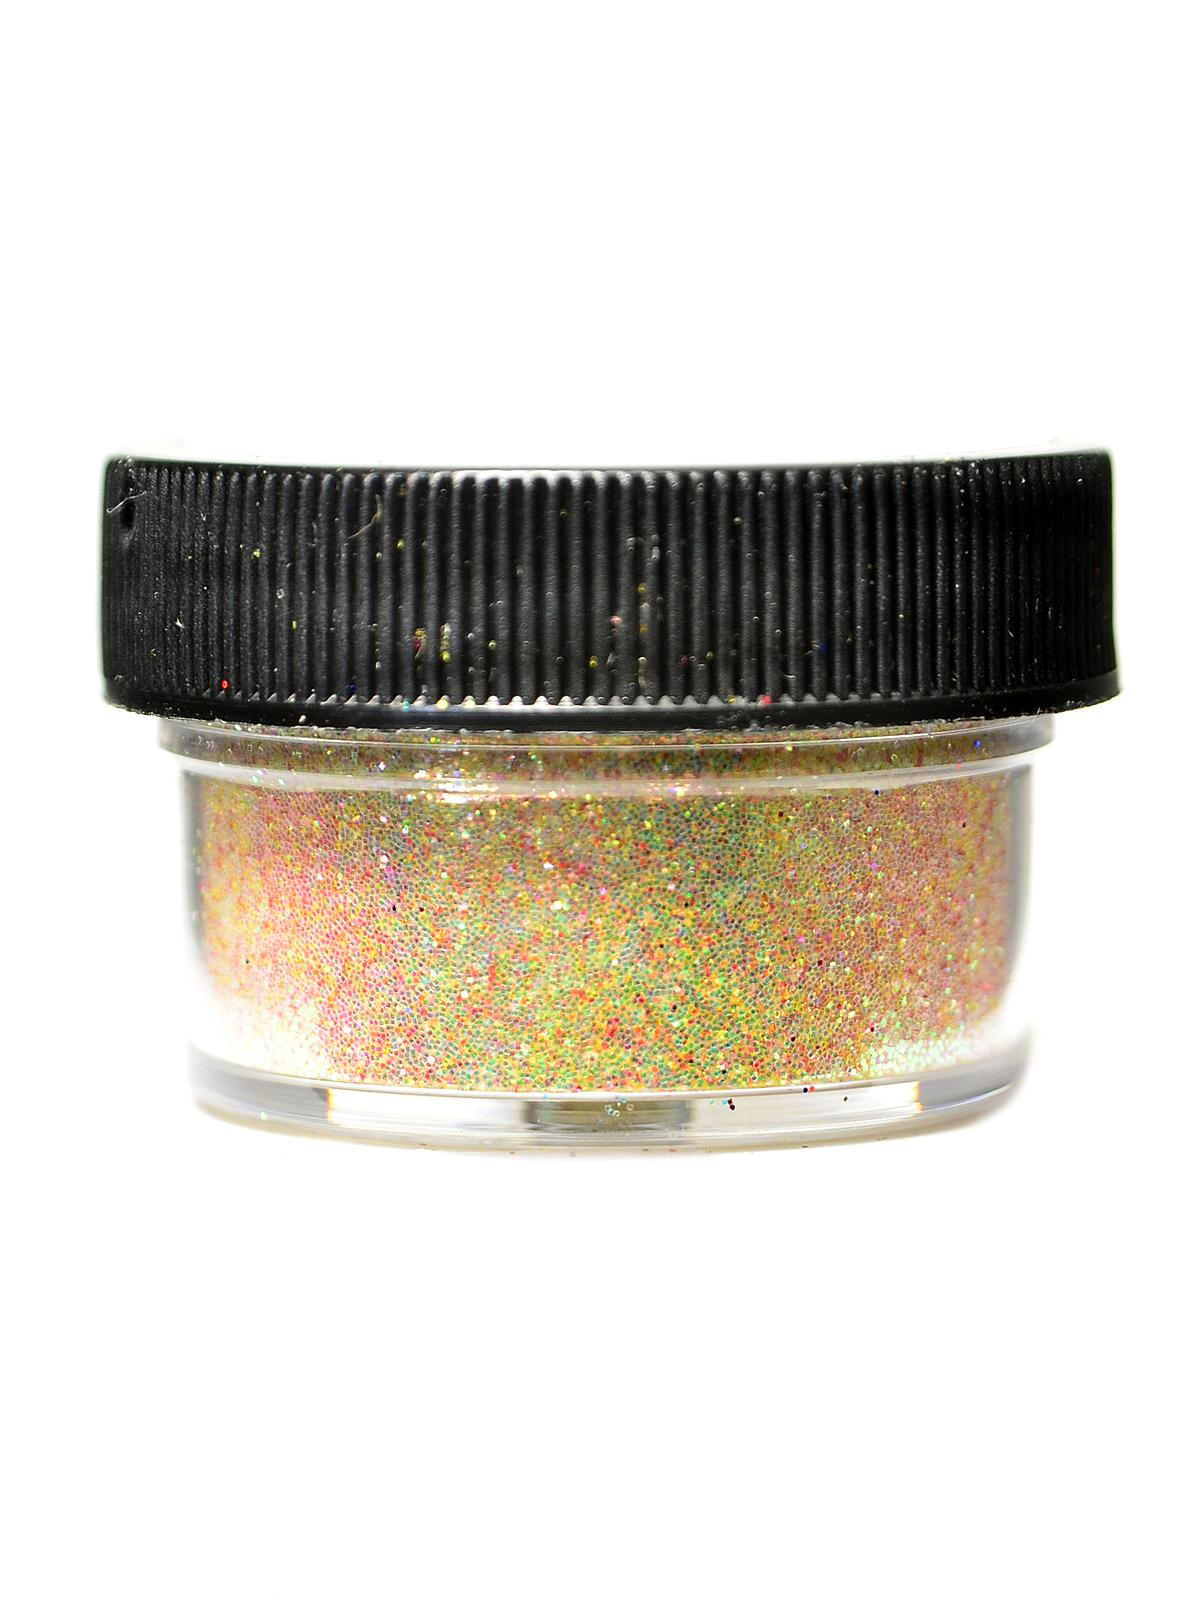 Ultrafine Transparent Glitter Flax 1 2 Oz. Jar